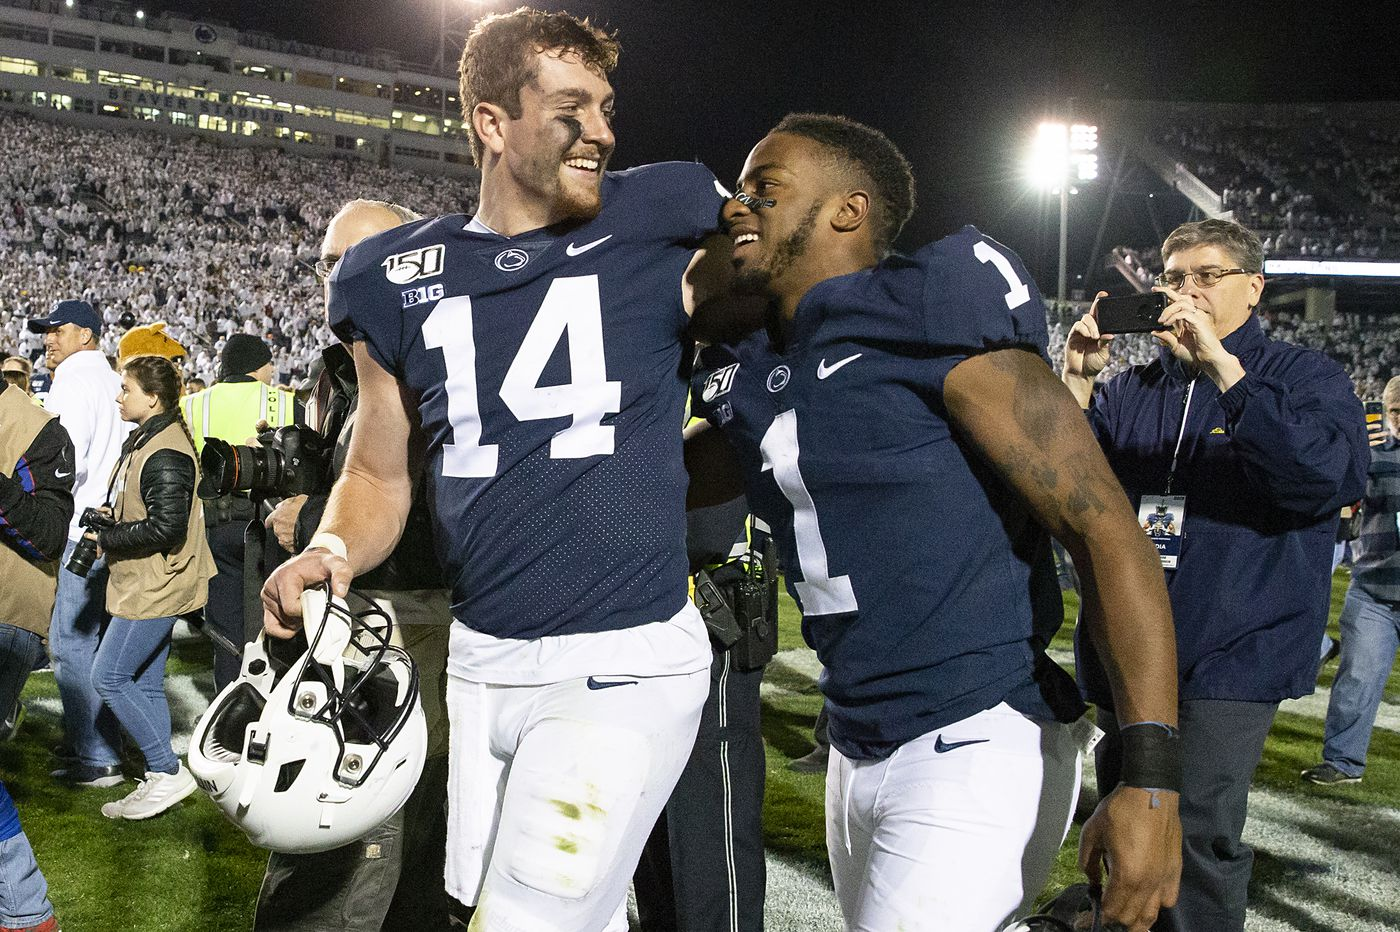 Five observations from Penn State's thrilling 28-21 victory over Michigan